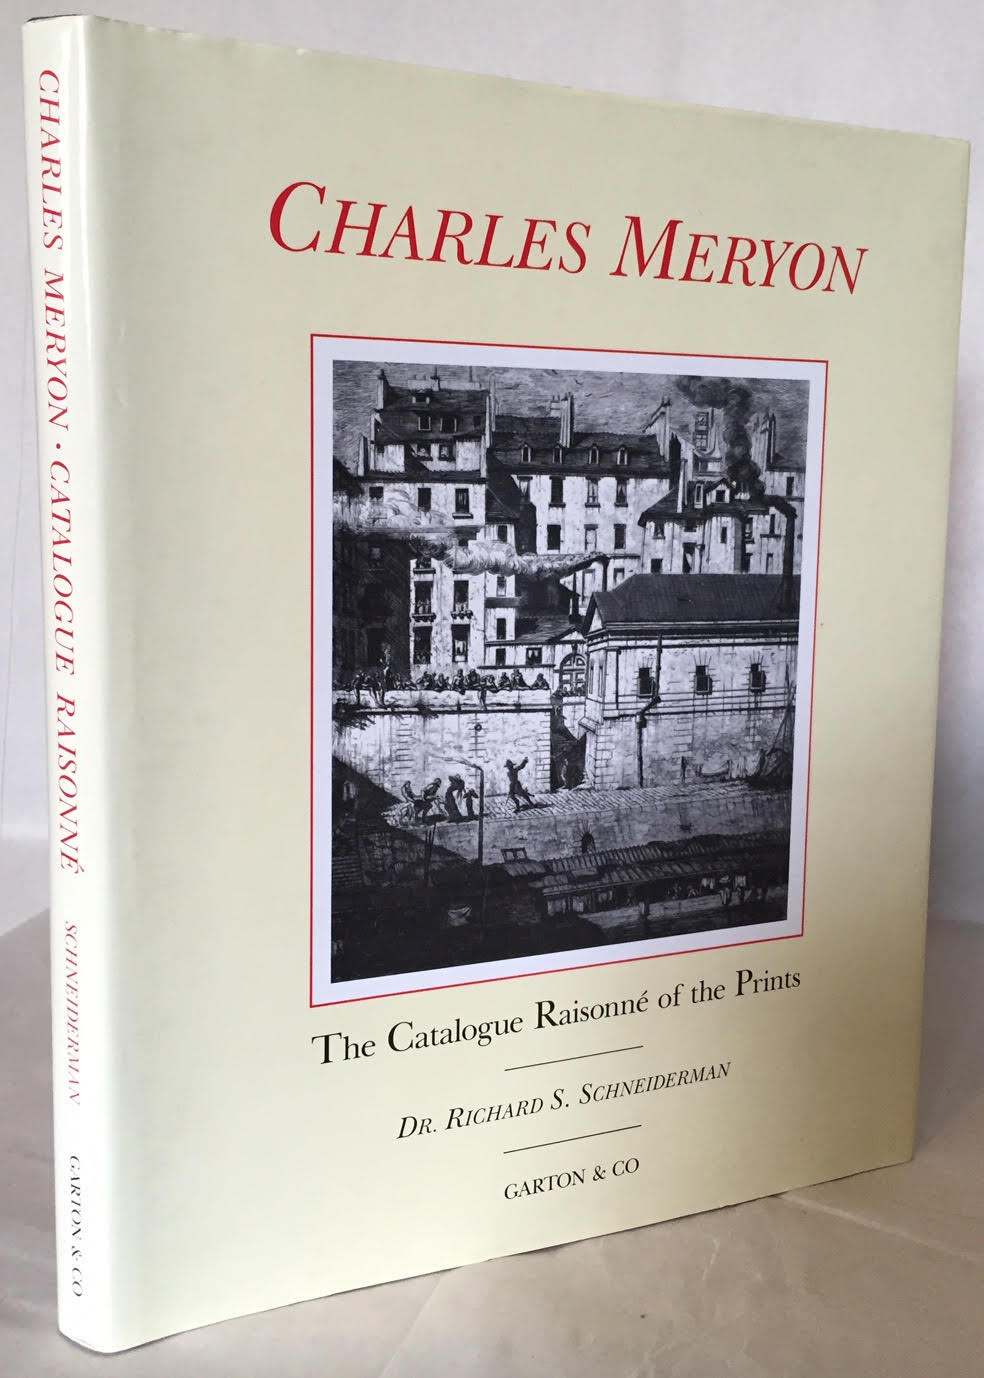 Image for The Catalogue Raisonne of the Prints of Charles Meryon